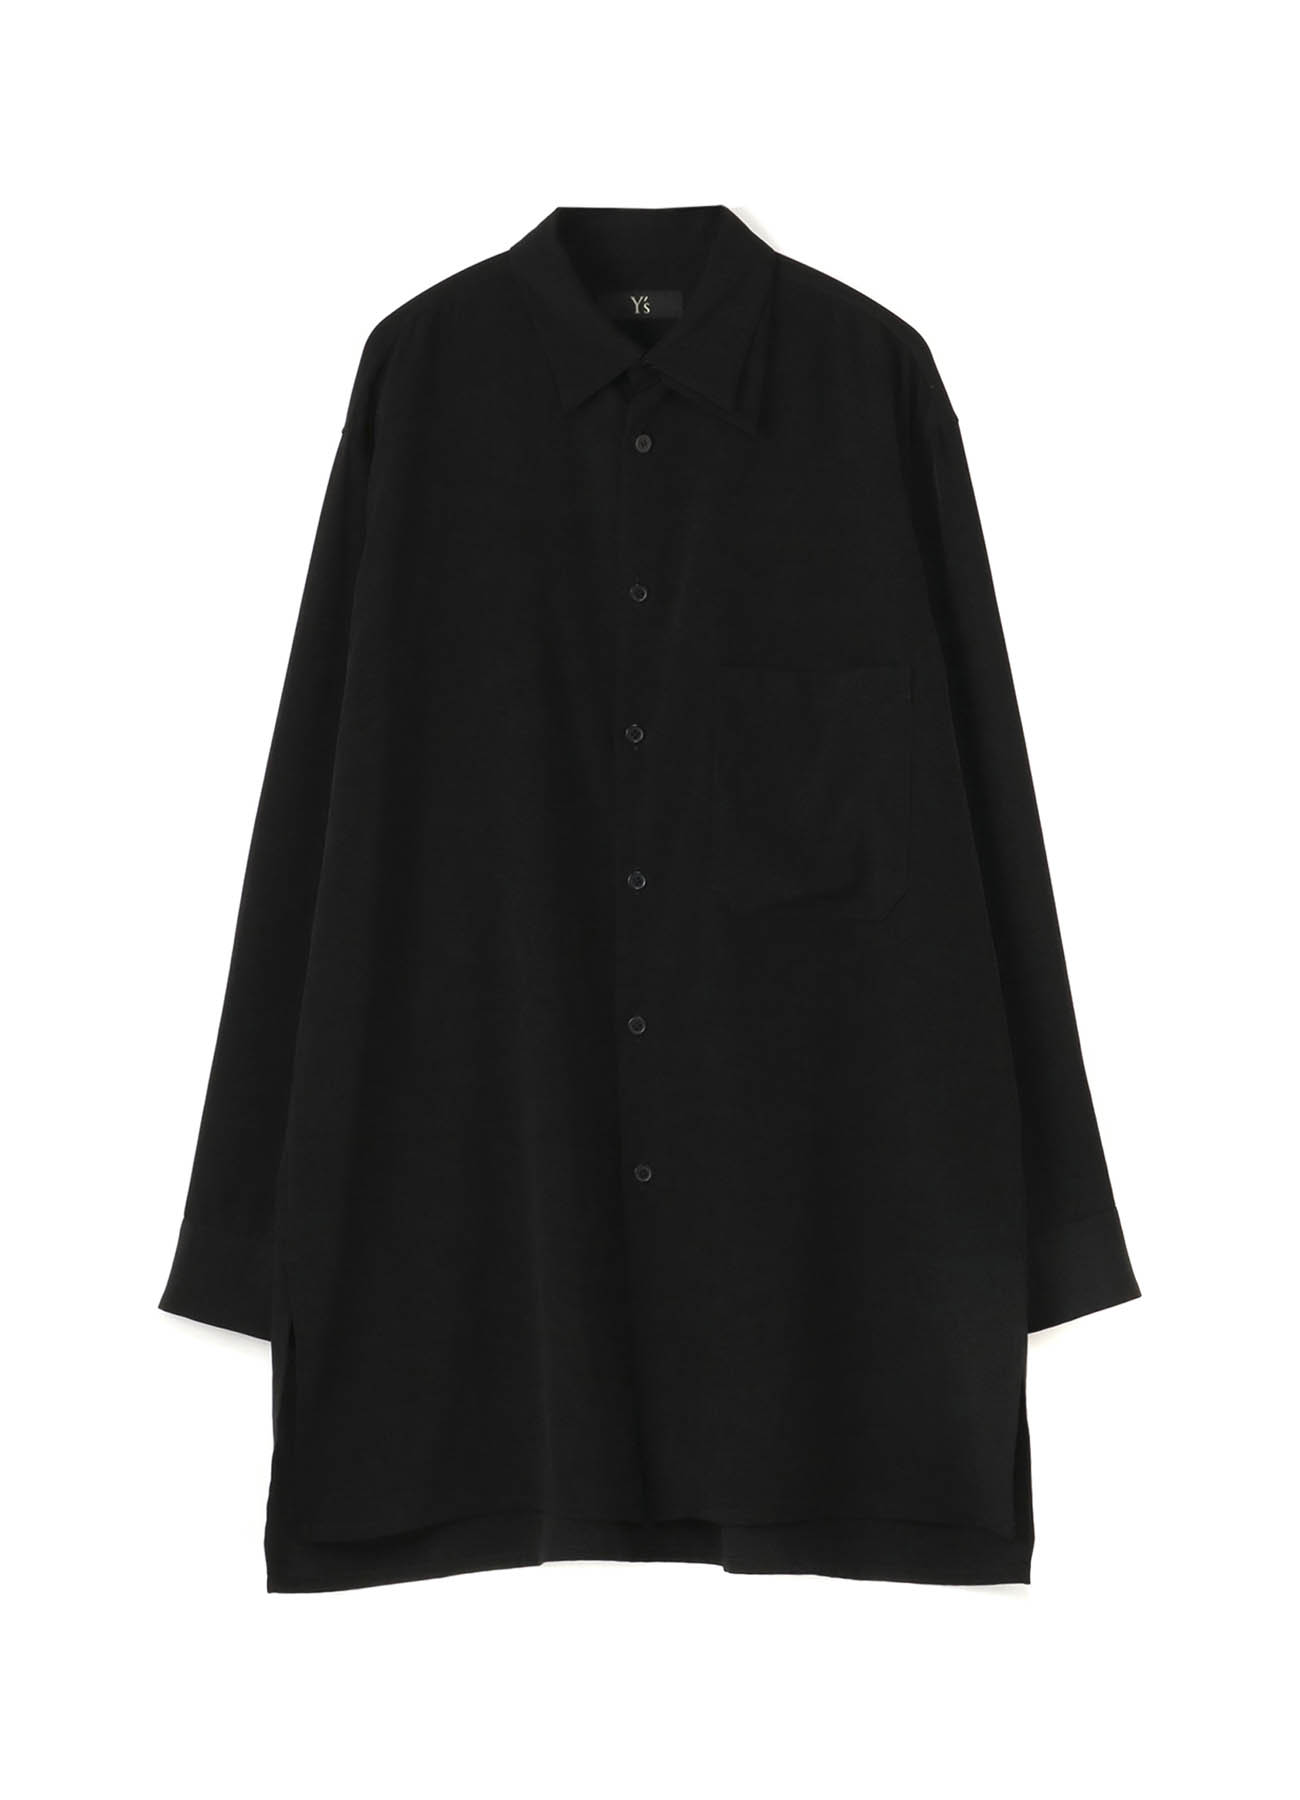 DECYNE LEFT COLLAR LAYERED BLOUSE